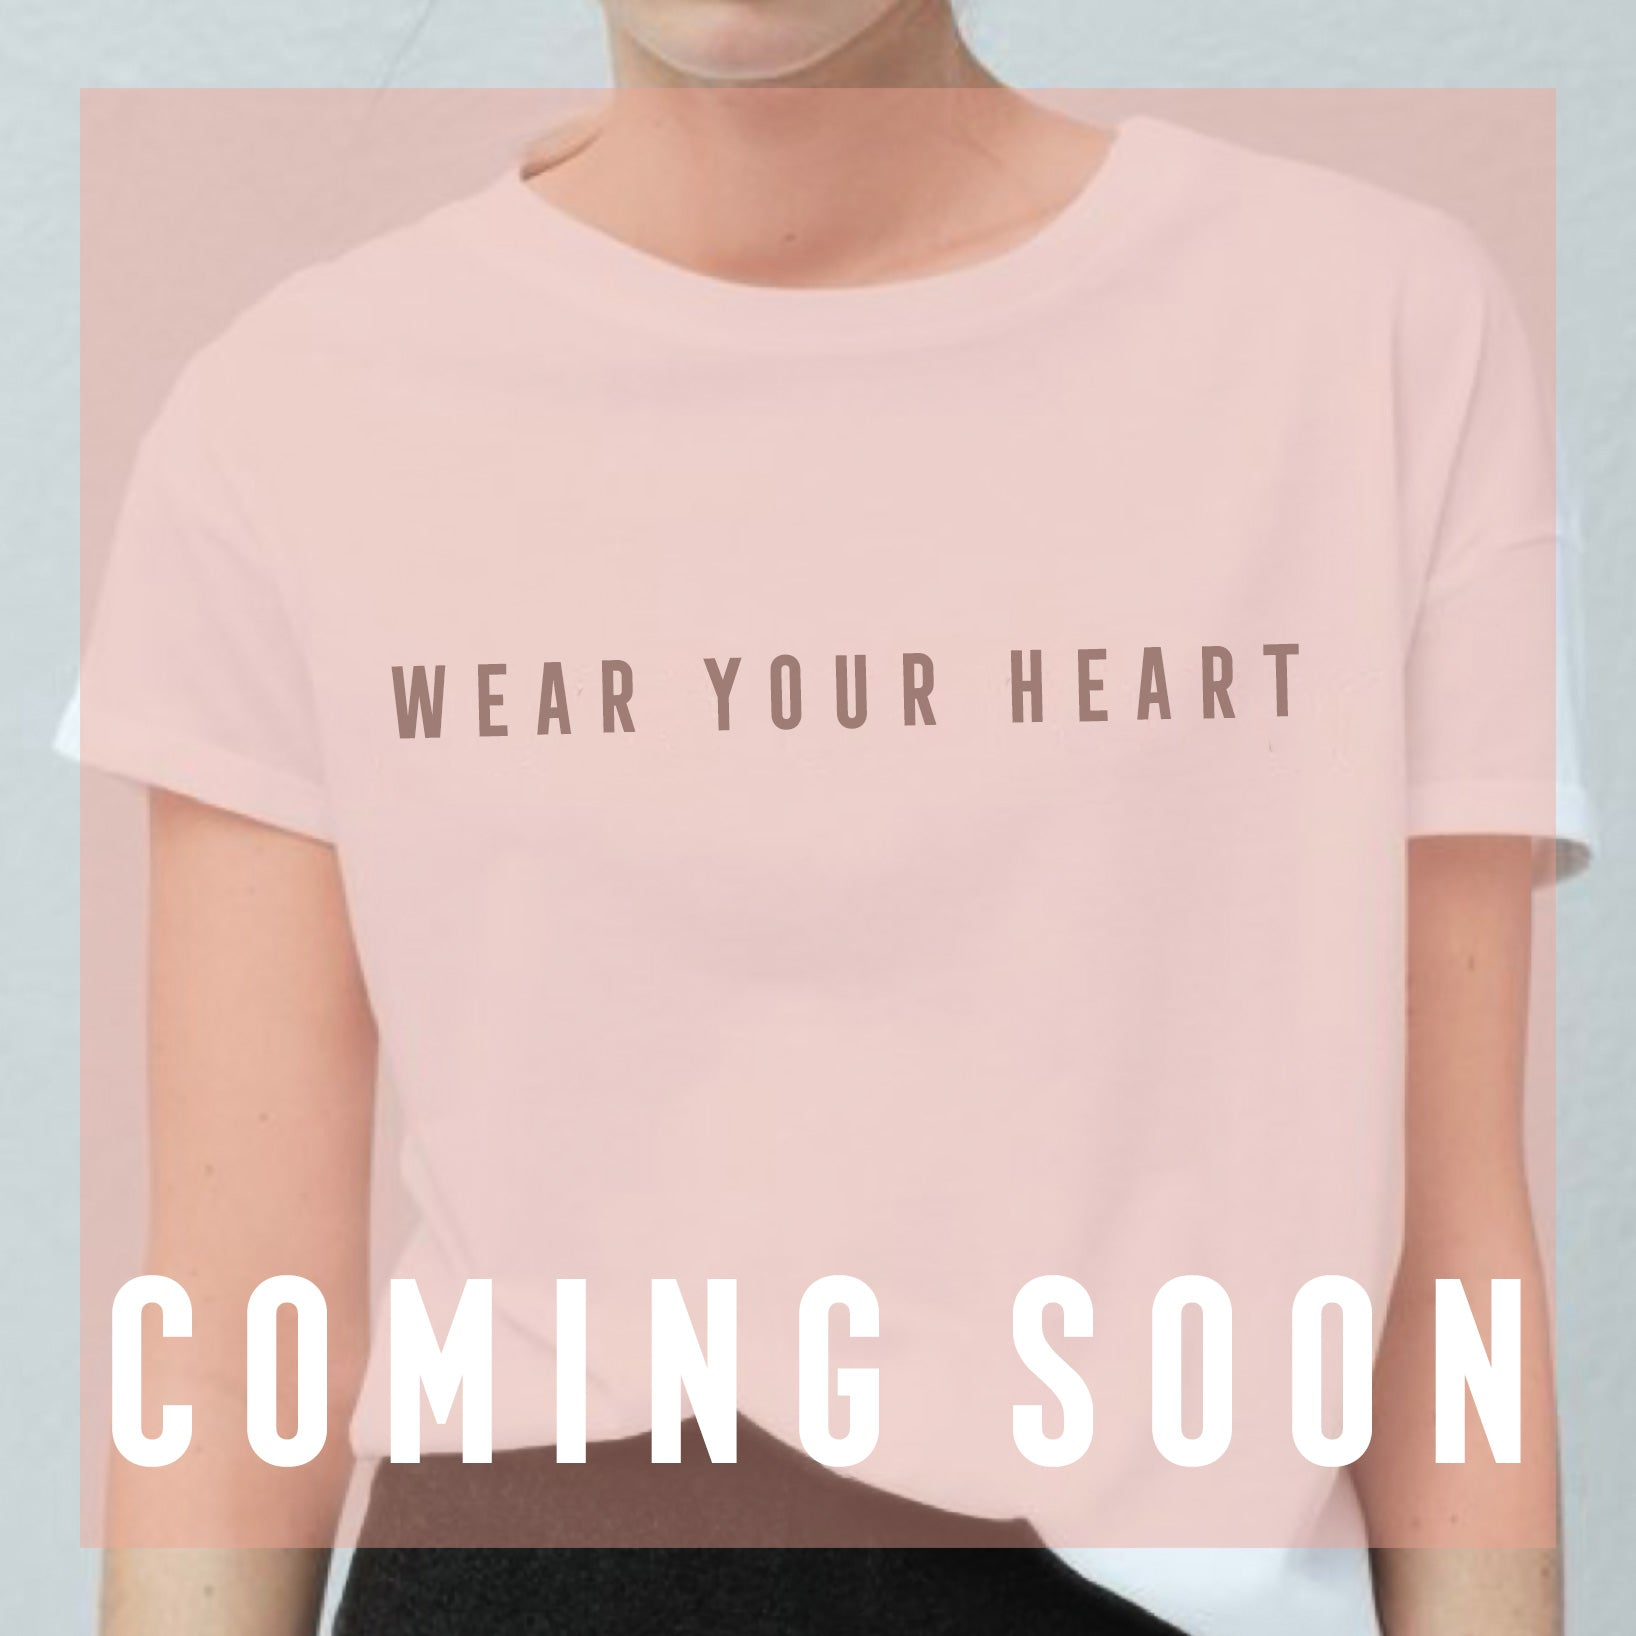 Wear Your Heart T-shirt